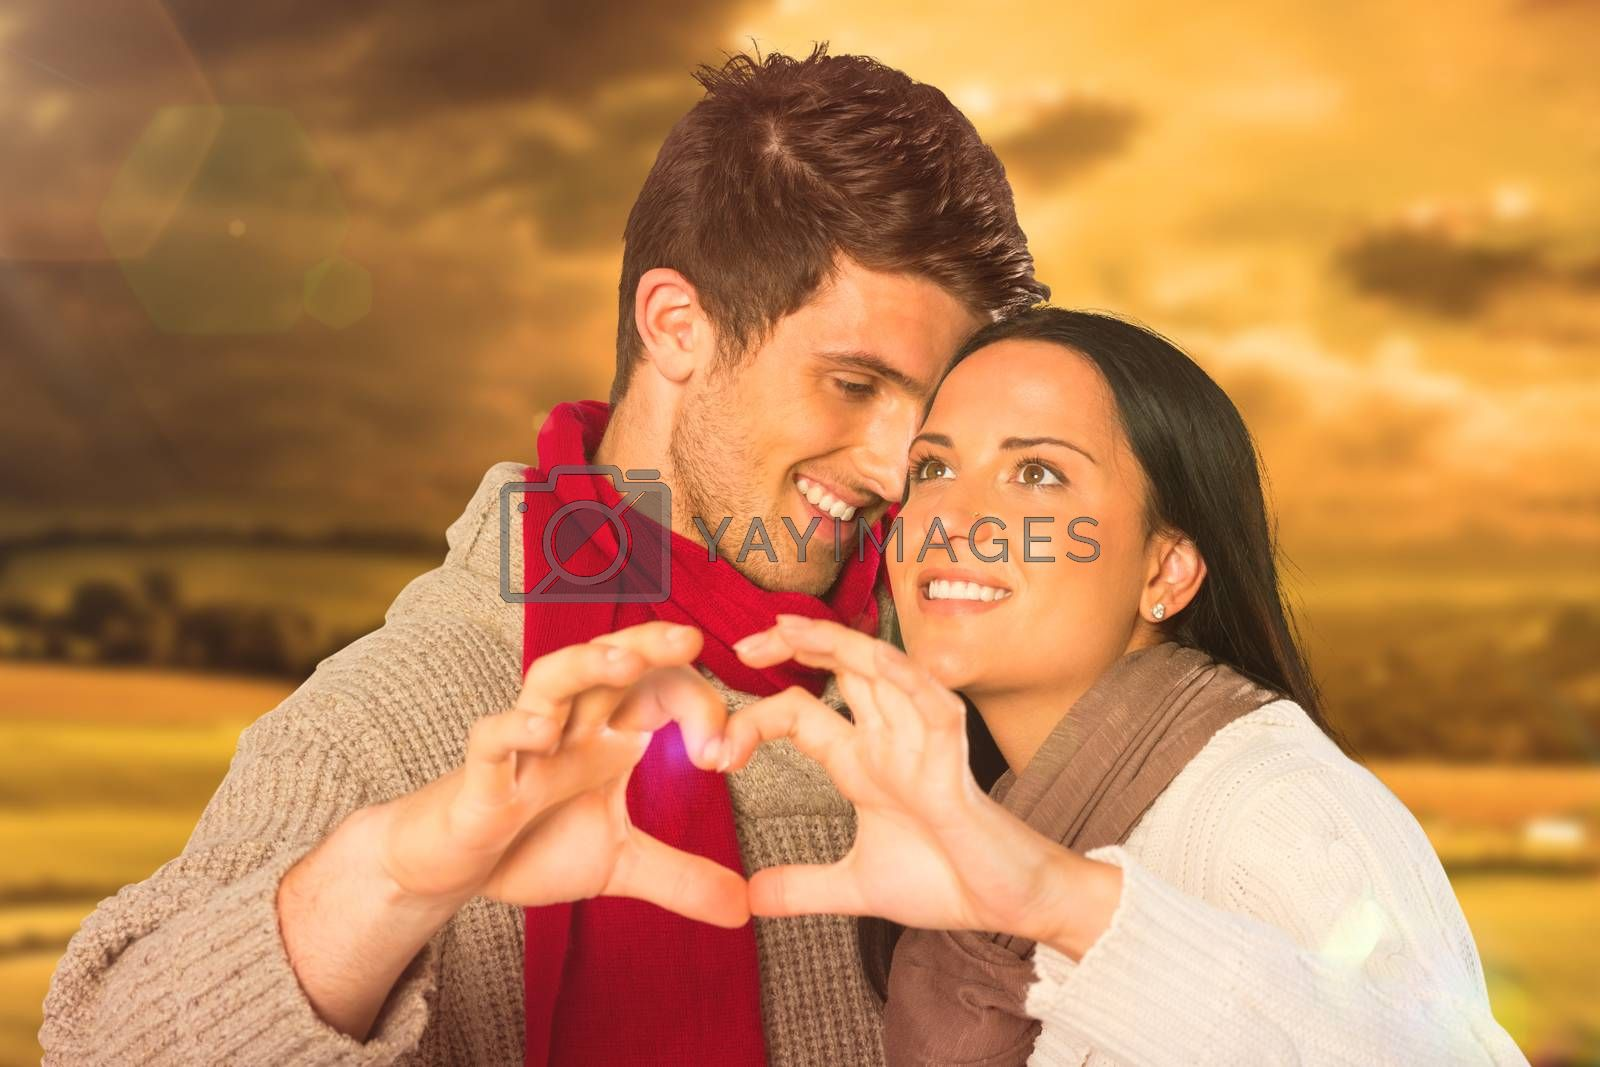 Young couple making heart with hands against country scene